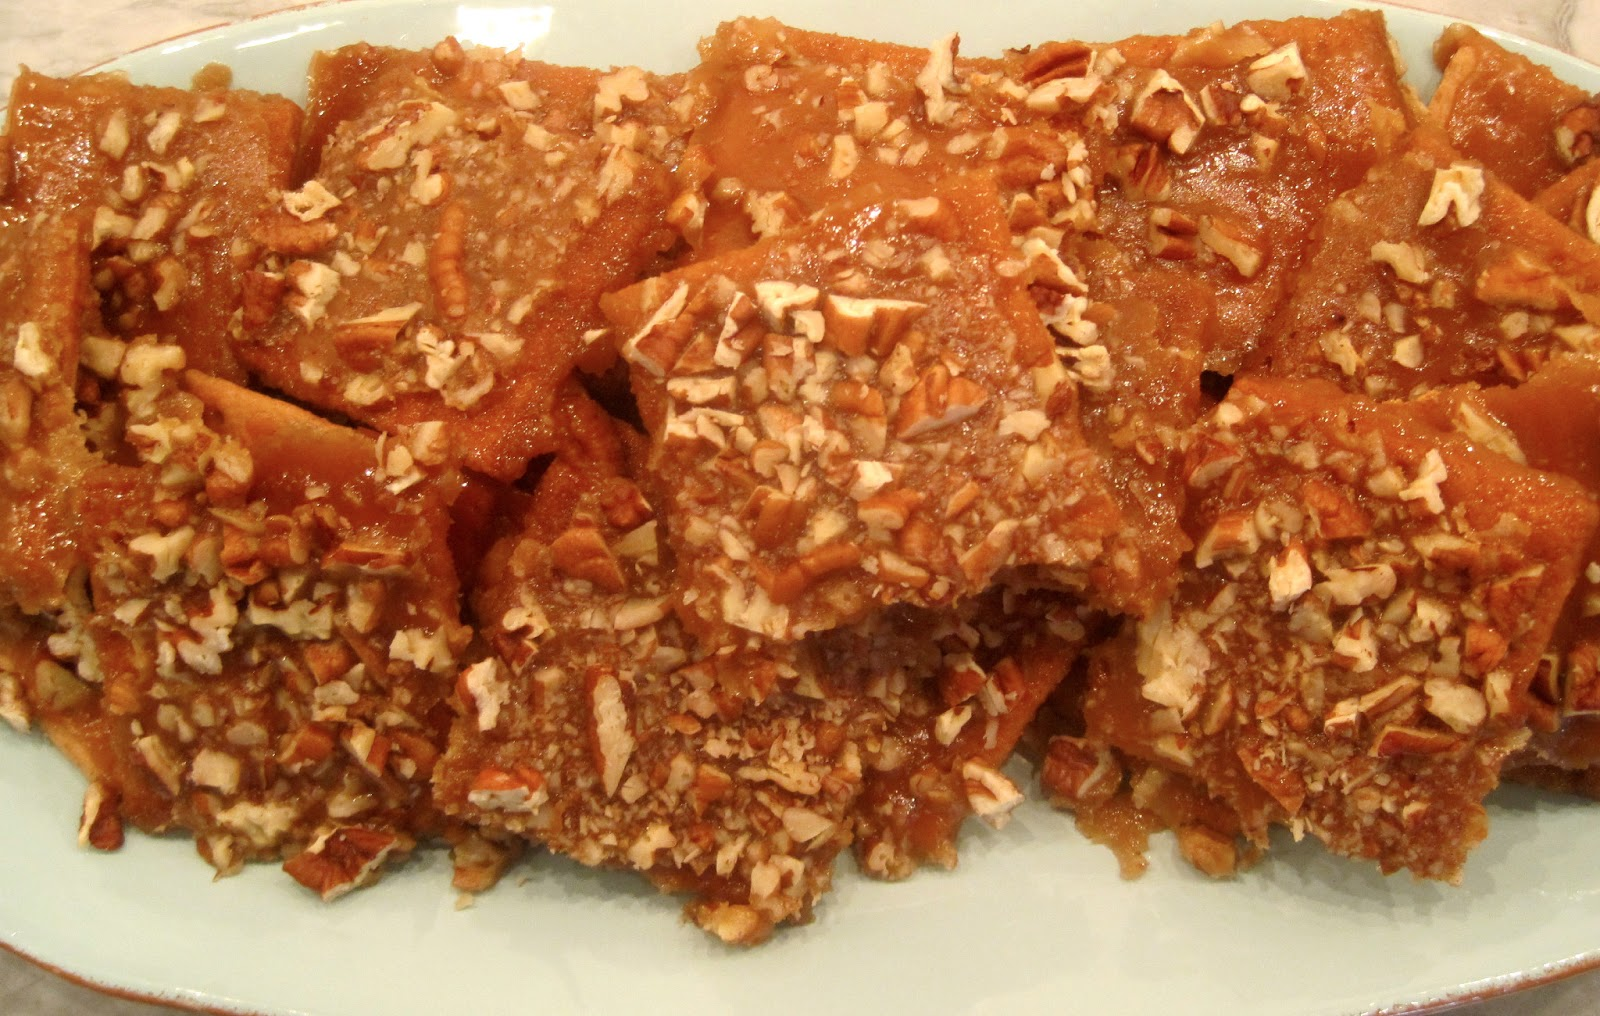 The Wooden Spoon Diaries: Graham Cracker Toffee Bars